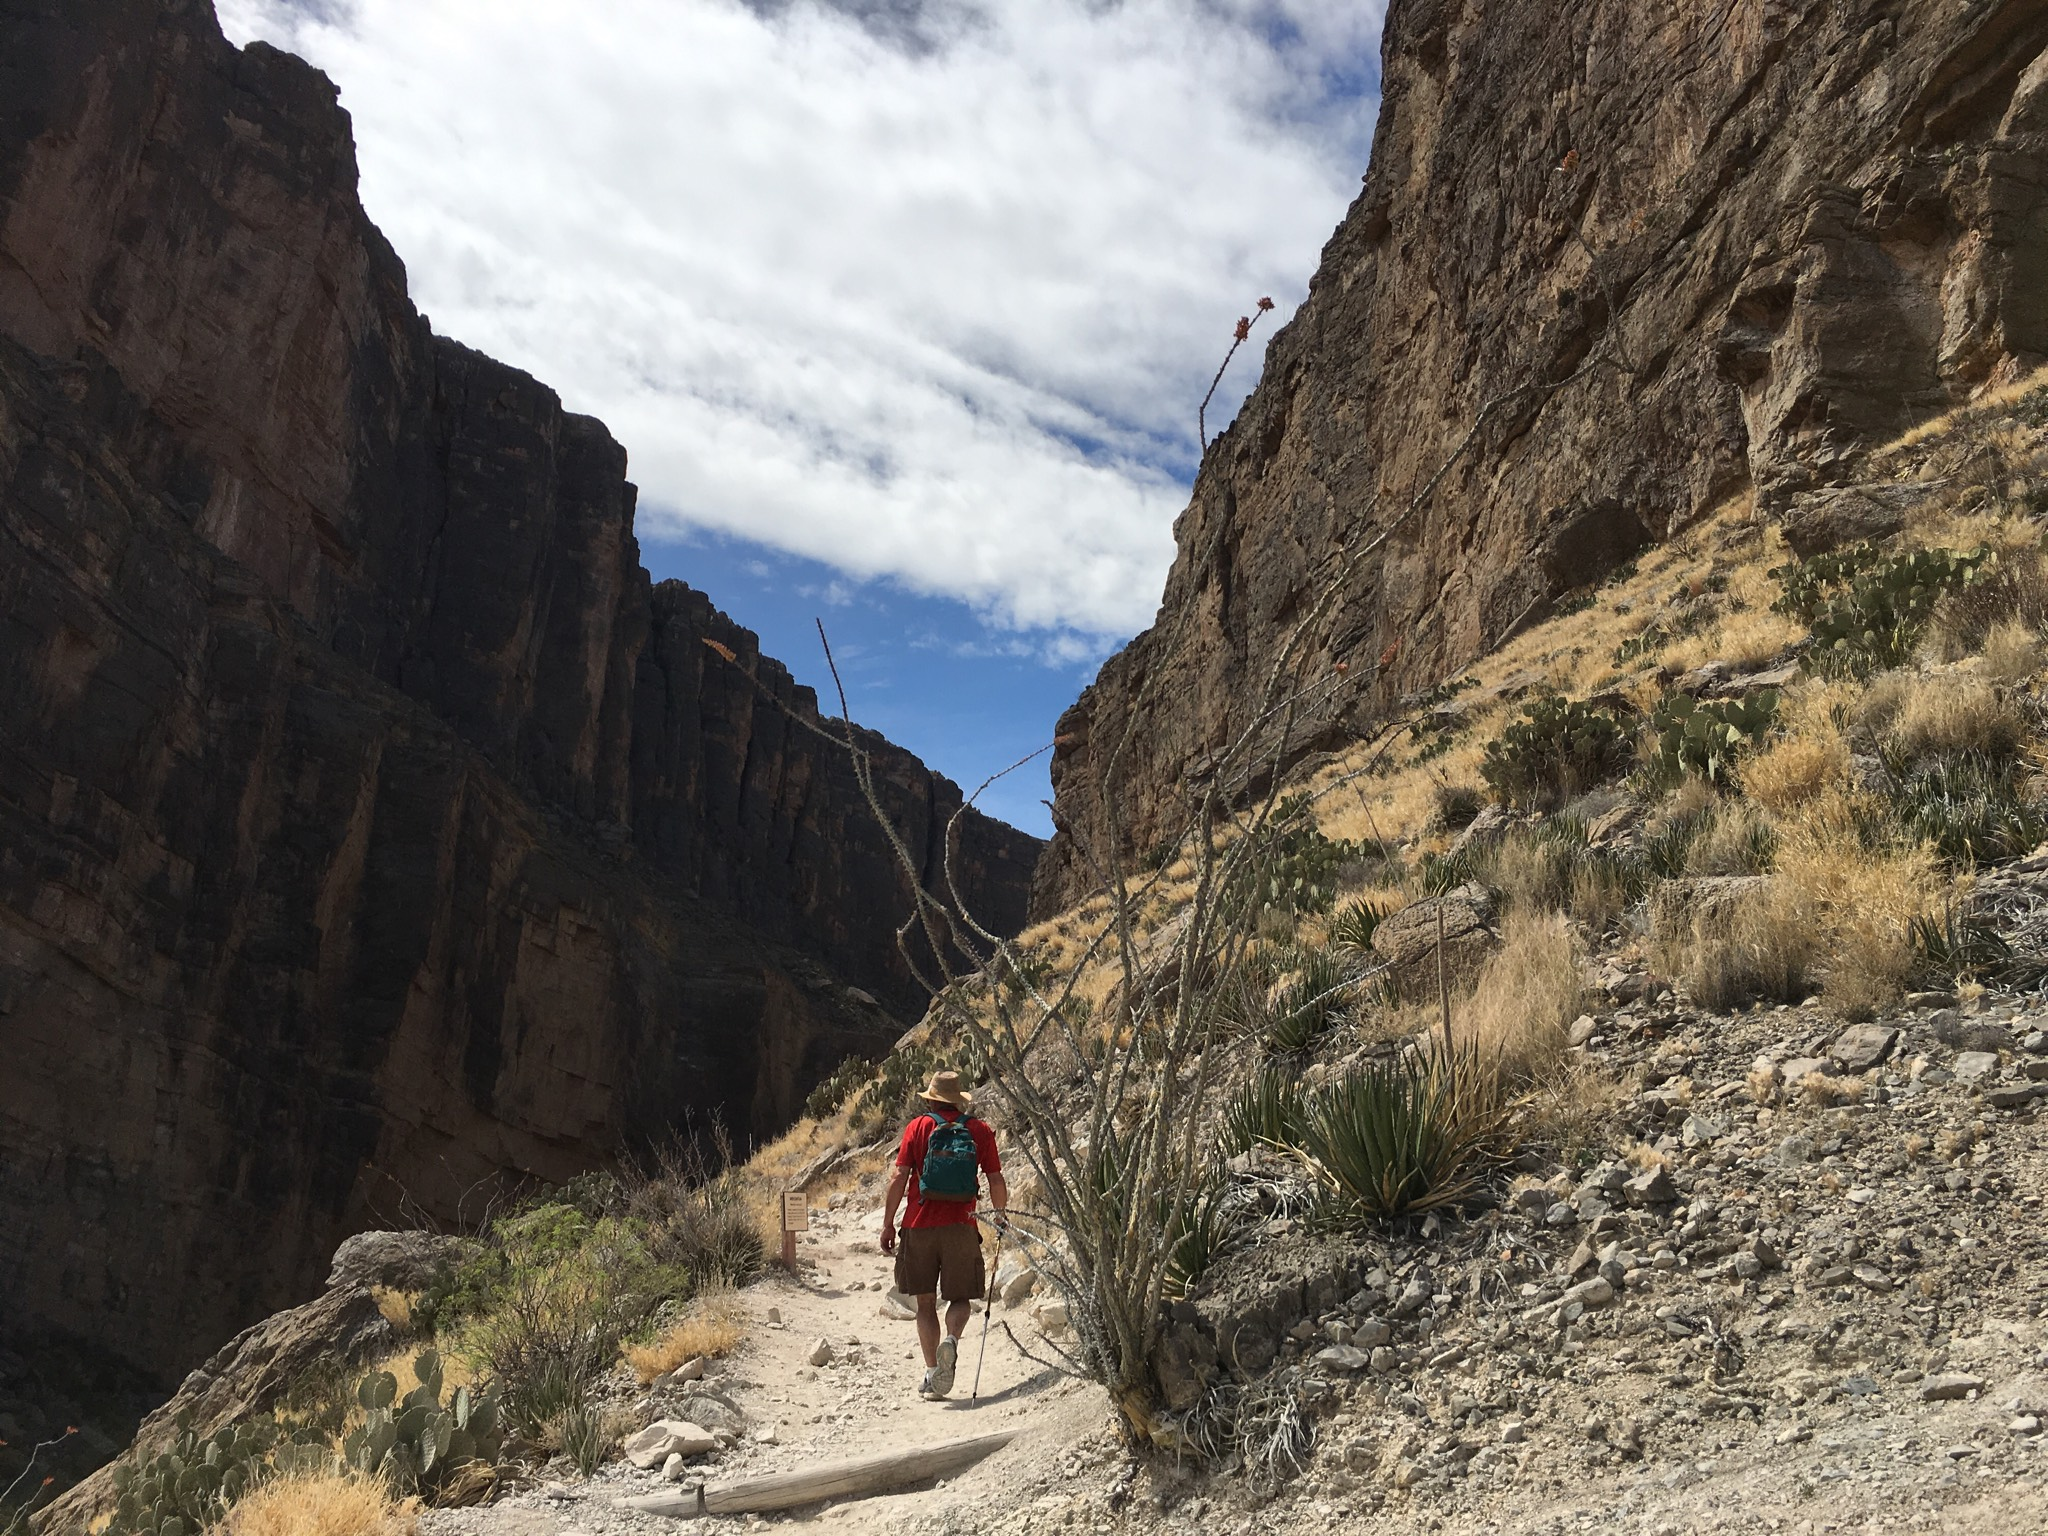 Off-road, headed up the trail to Santa Elena Canyon in Big Bend National Park. Photo by Ellen Holmes